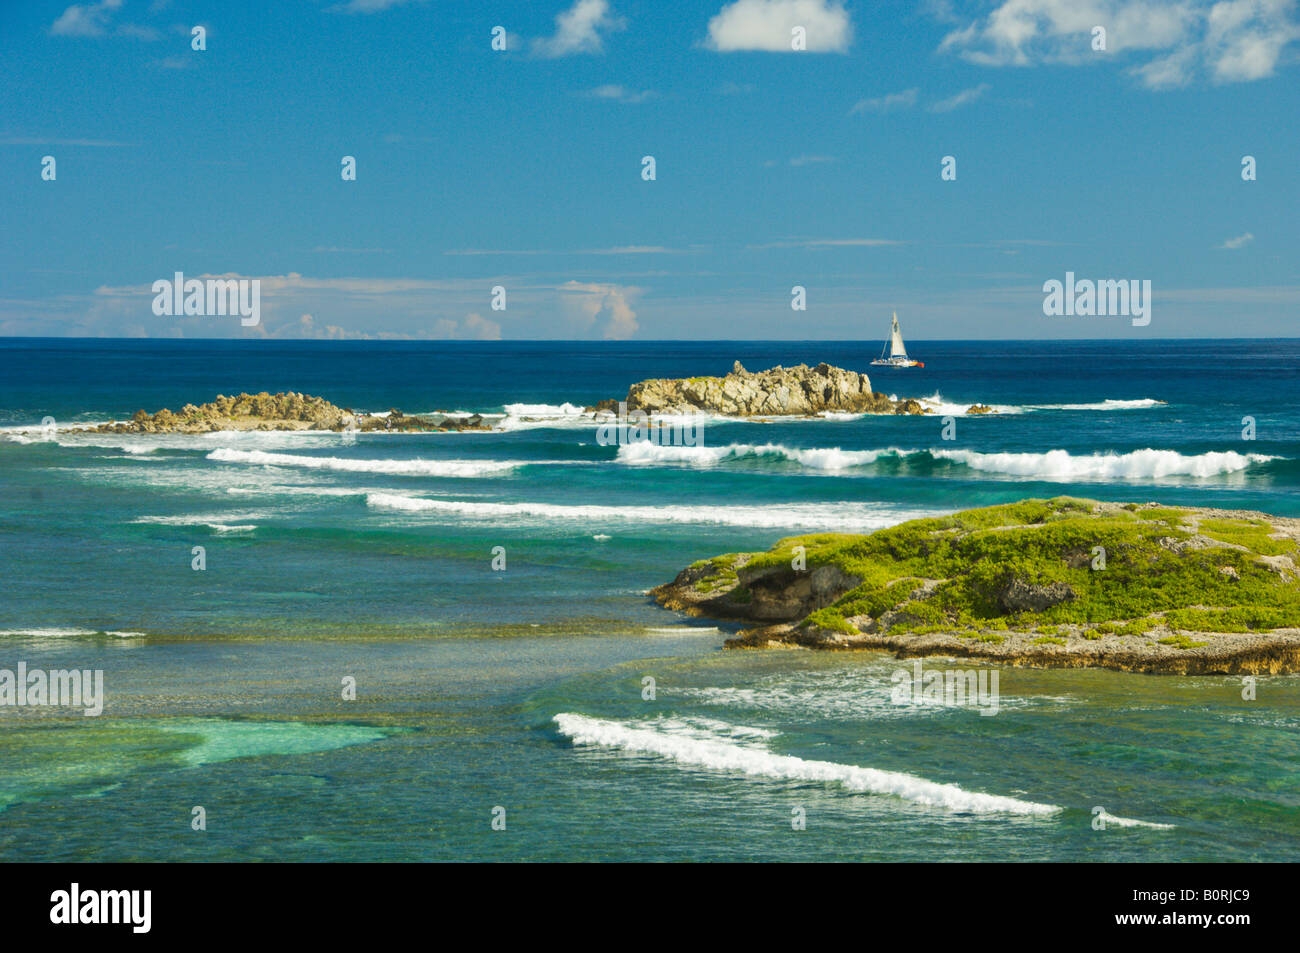 Small islands an shallow waters along the eastern coast of Saint Martin French Protectorate - Stock Image